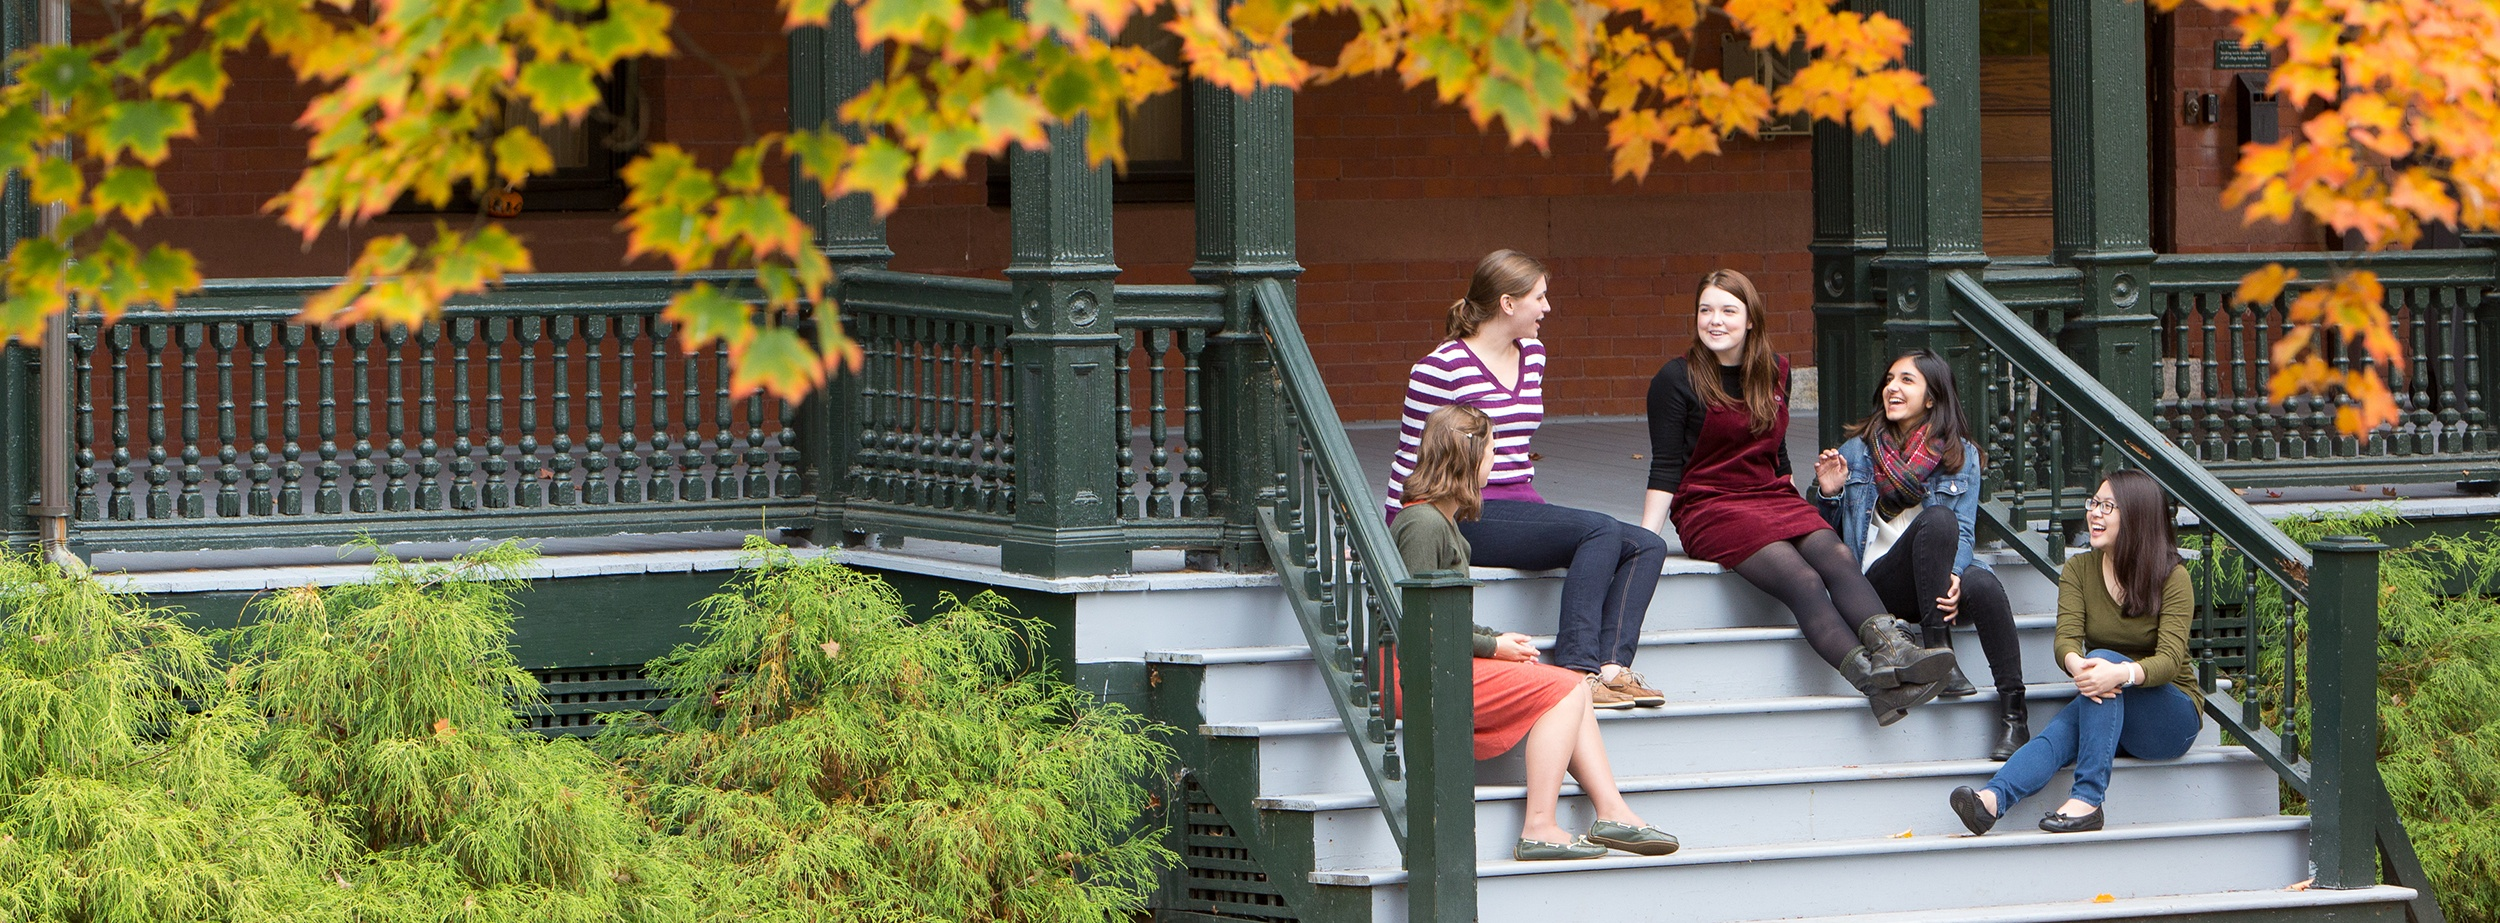 campus-fall_5_malyszko_mt.holyoke_10-15_067.jpg